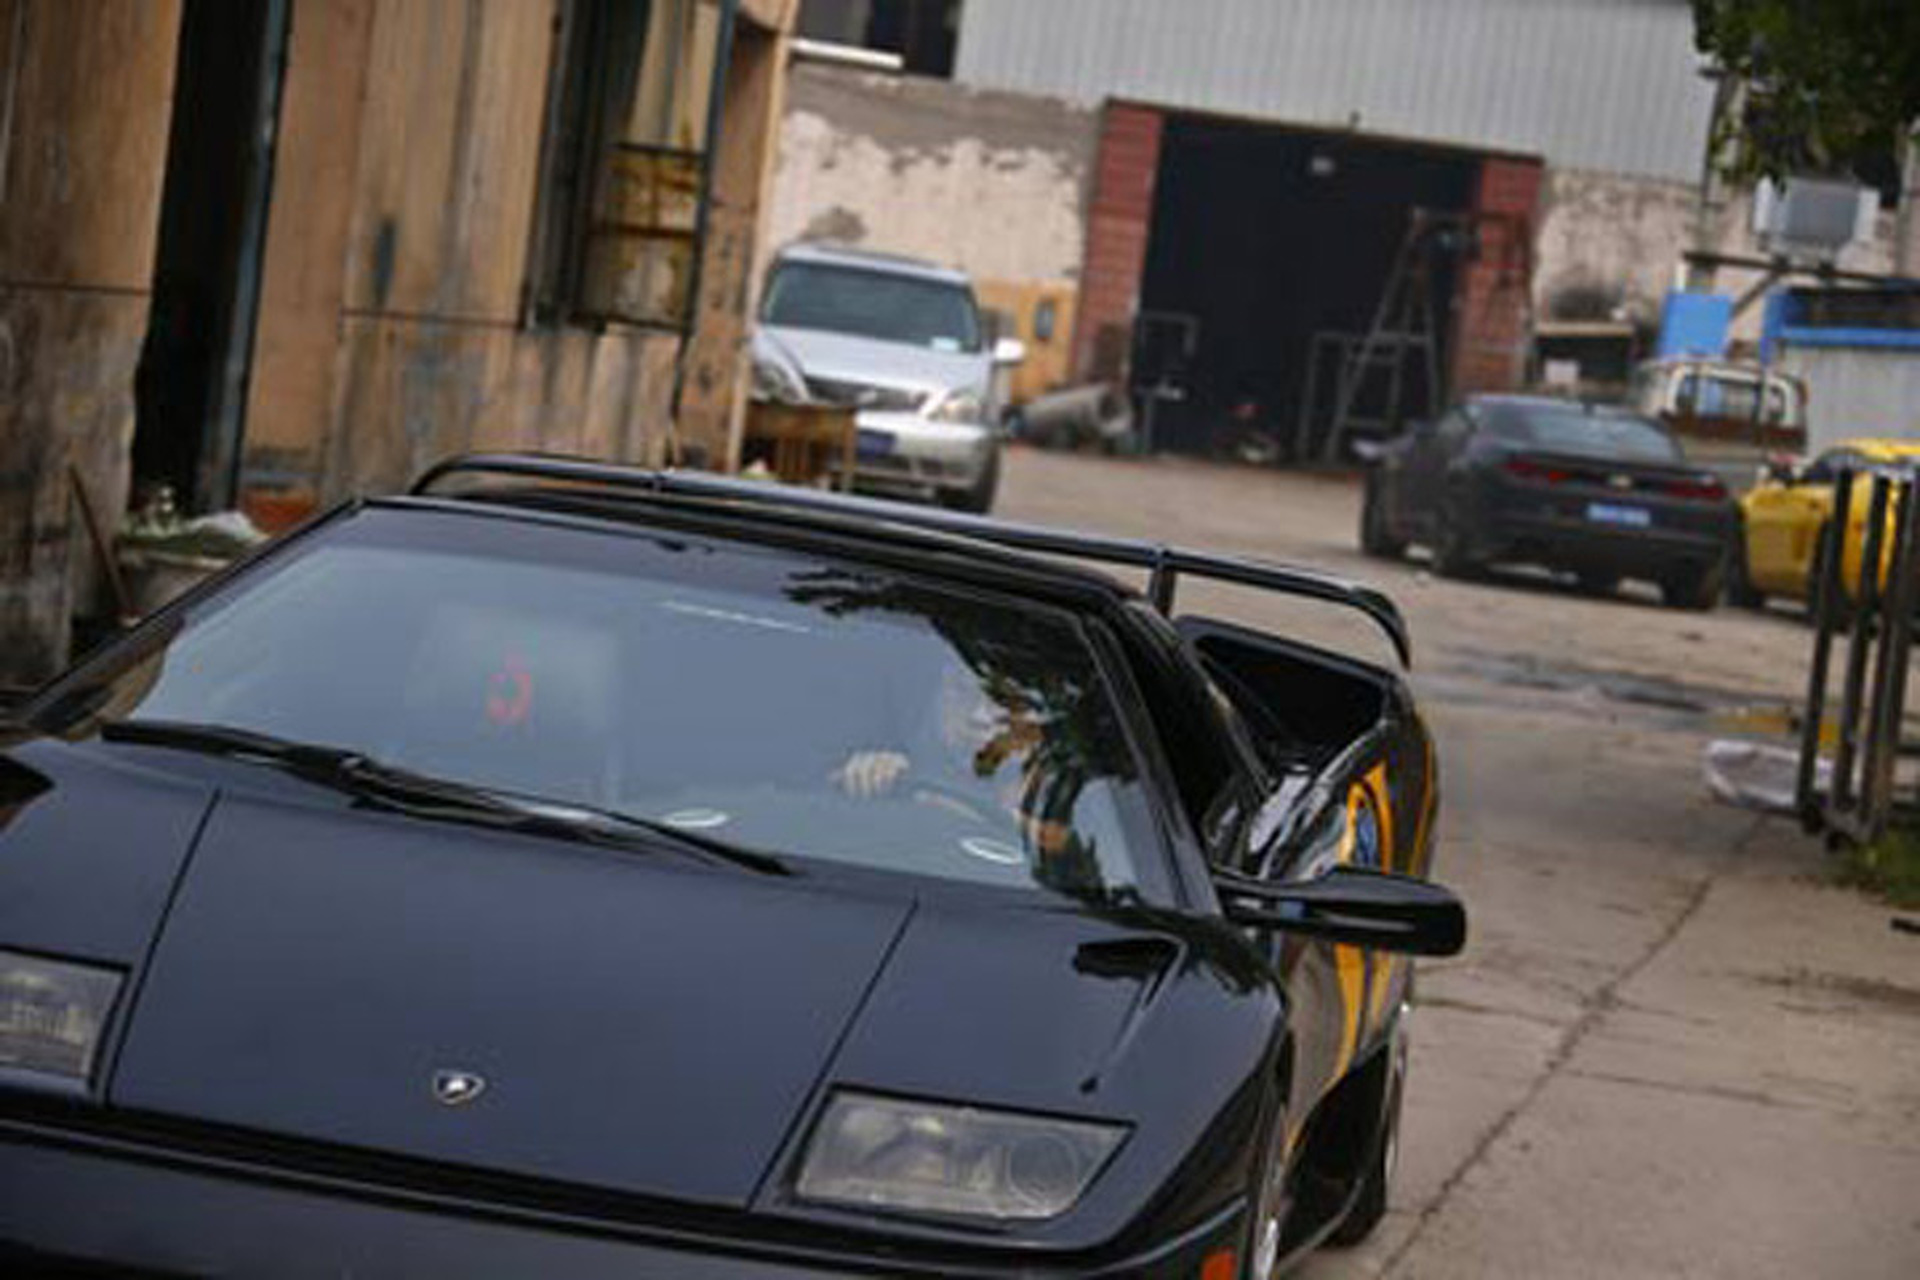 Two Guys in China Built Convincing Lamborghini Diablo Replicas